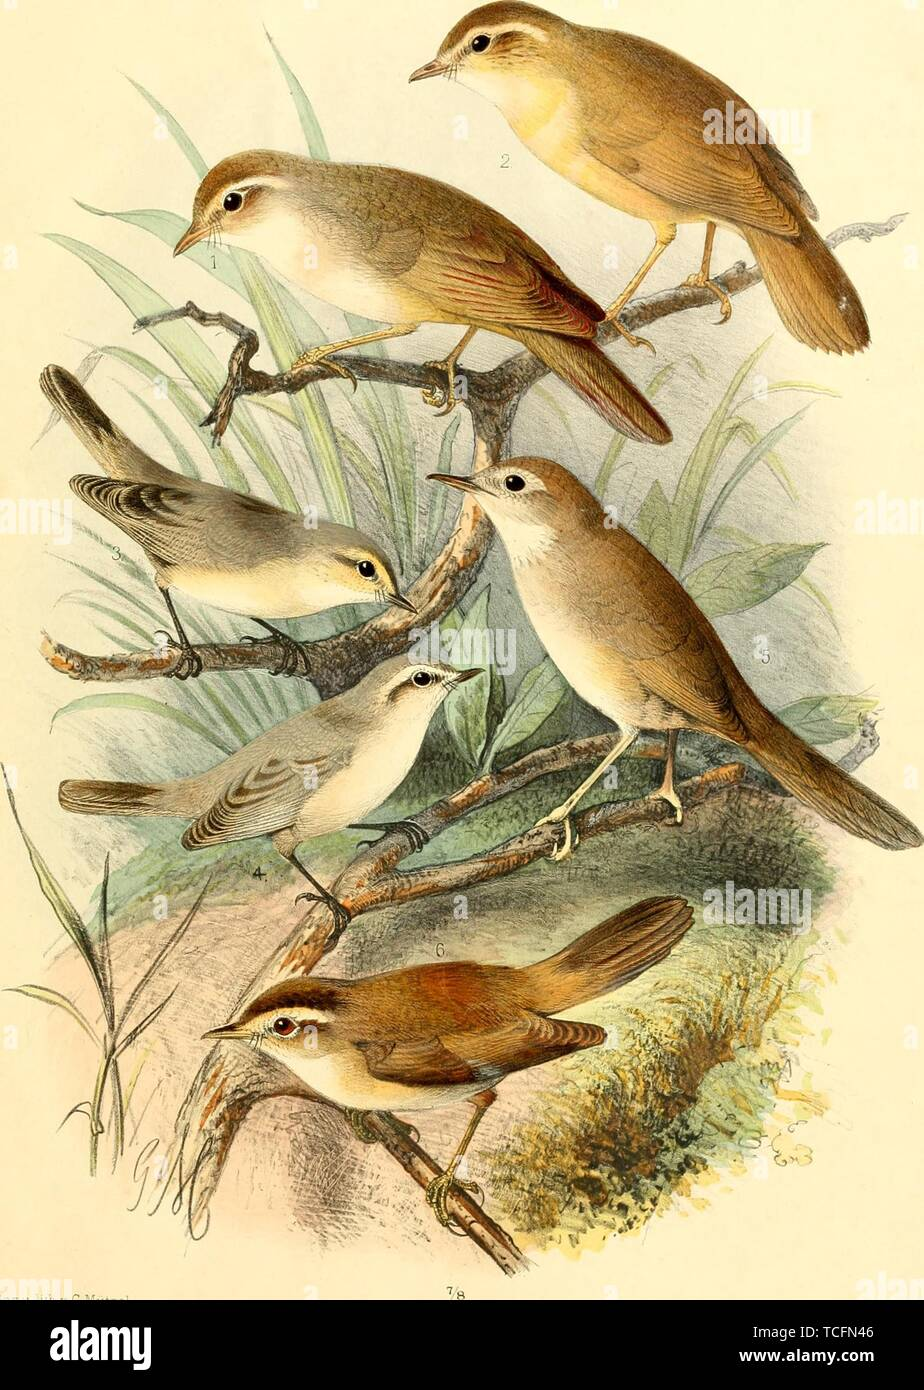 Engraved drawings of the Warblers, Radde's Warbler (Phylloscopus schwarzi), Plain Leaf Warbler (Phylloscopus neglectus), Brown Bush Warbler (Locustella luteoventris), and Black-browed Reed Warbler (Acrocephalus bistrigiceps), from the book 'Ornithographia Rossica' by Feodor Dmitrievich Pleske, 1825. Courtesy Internet Archive. () Stock Photo